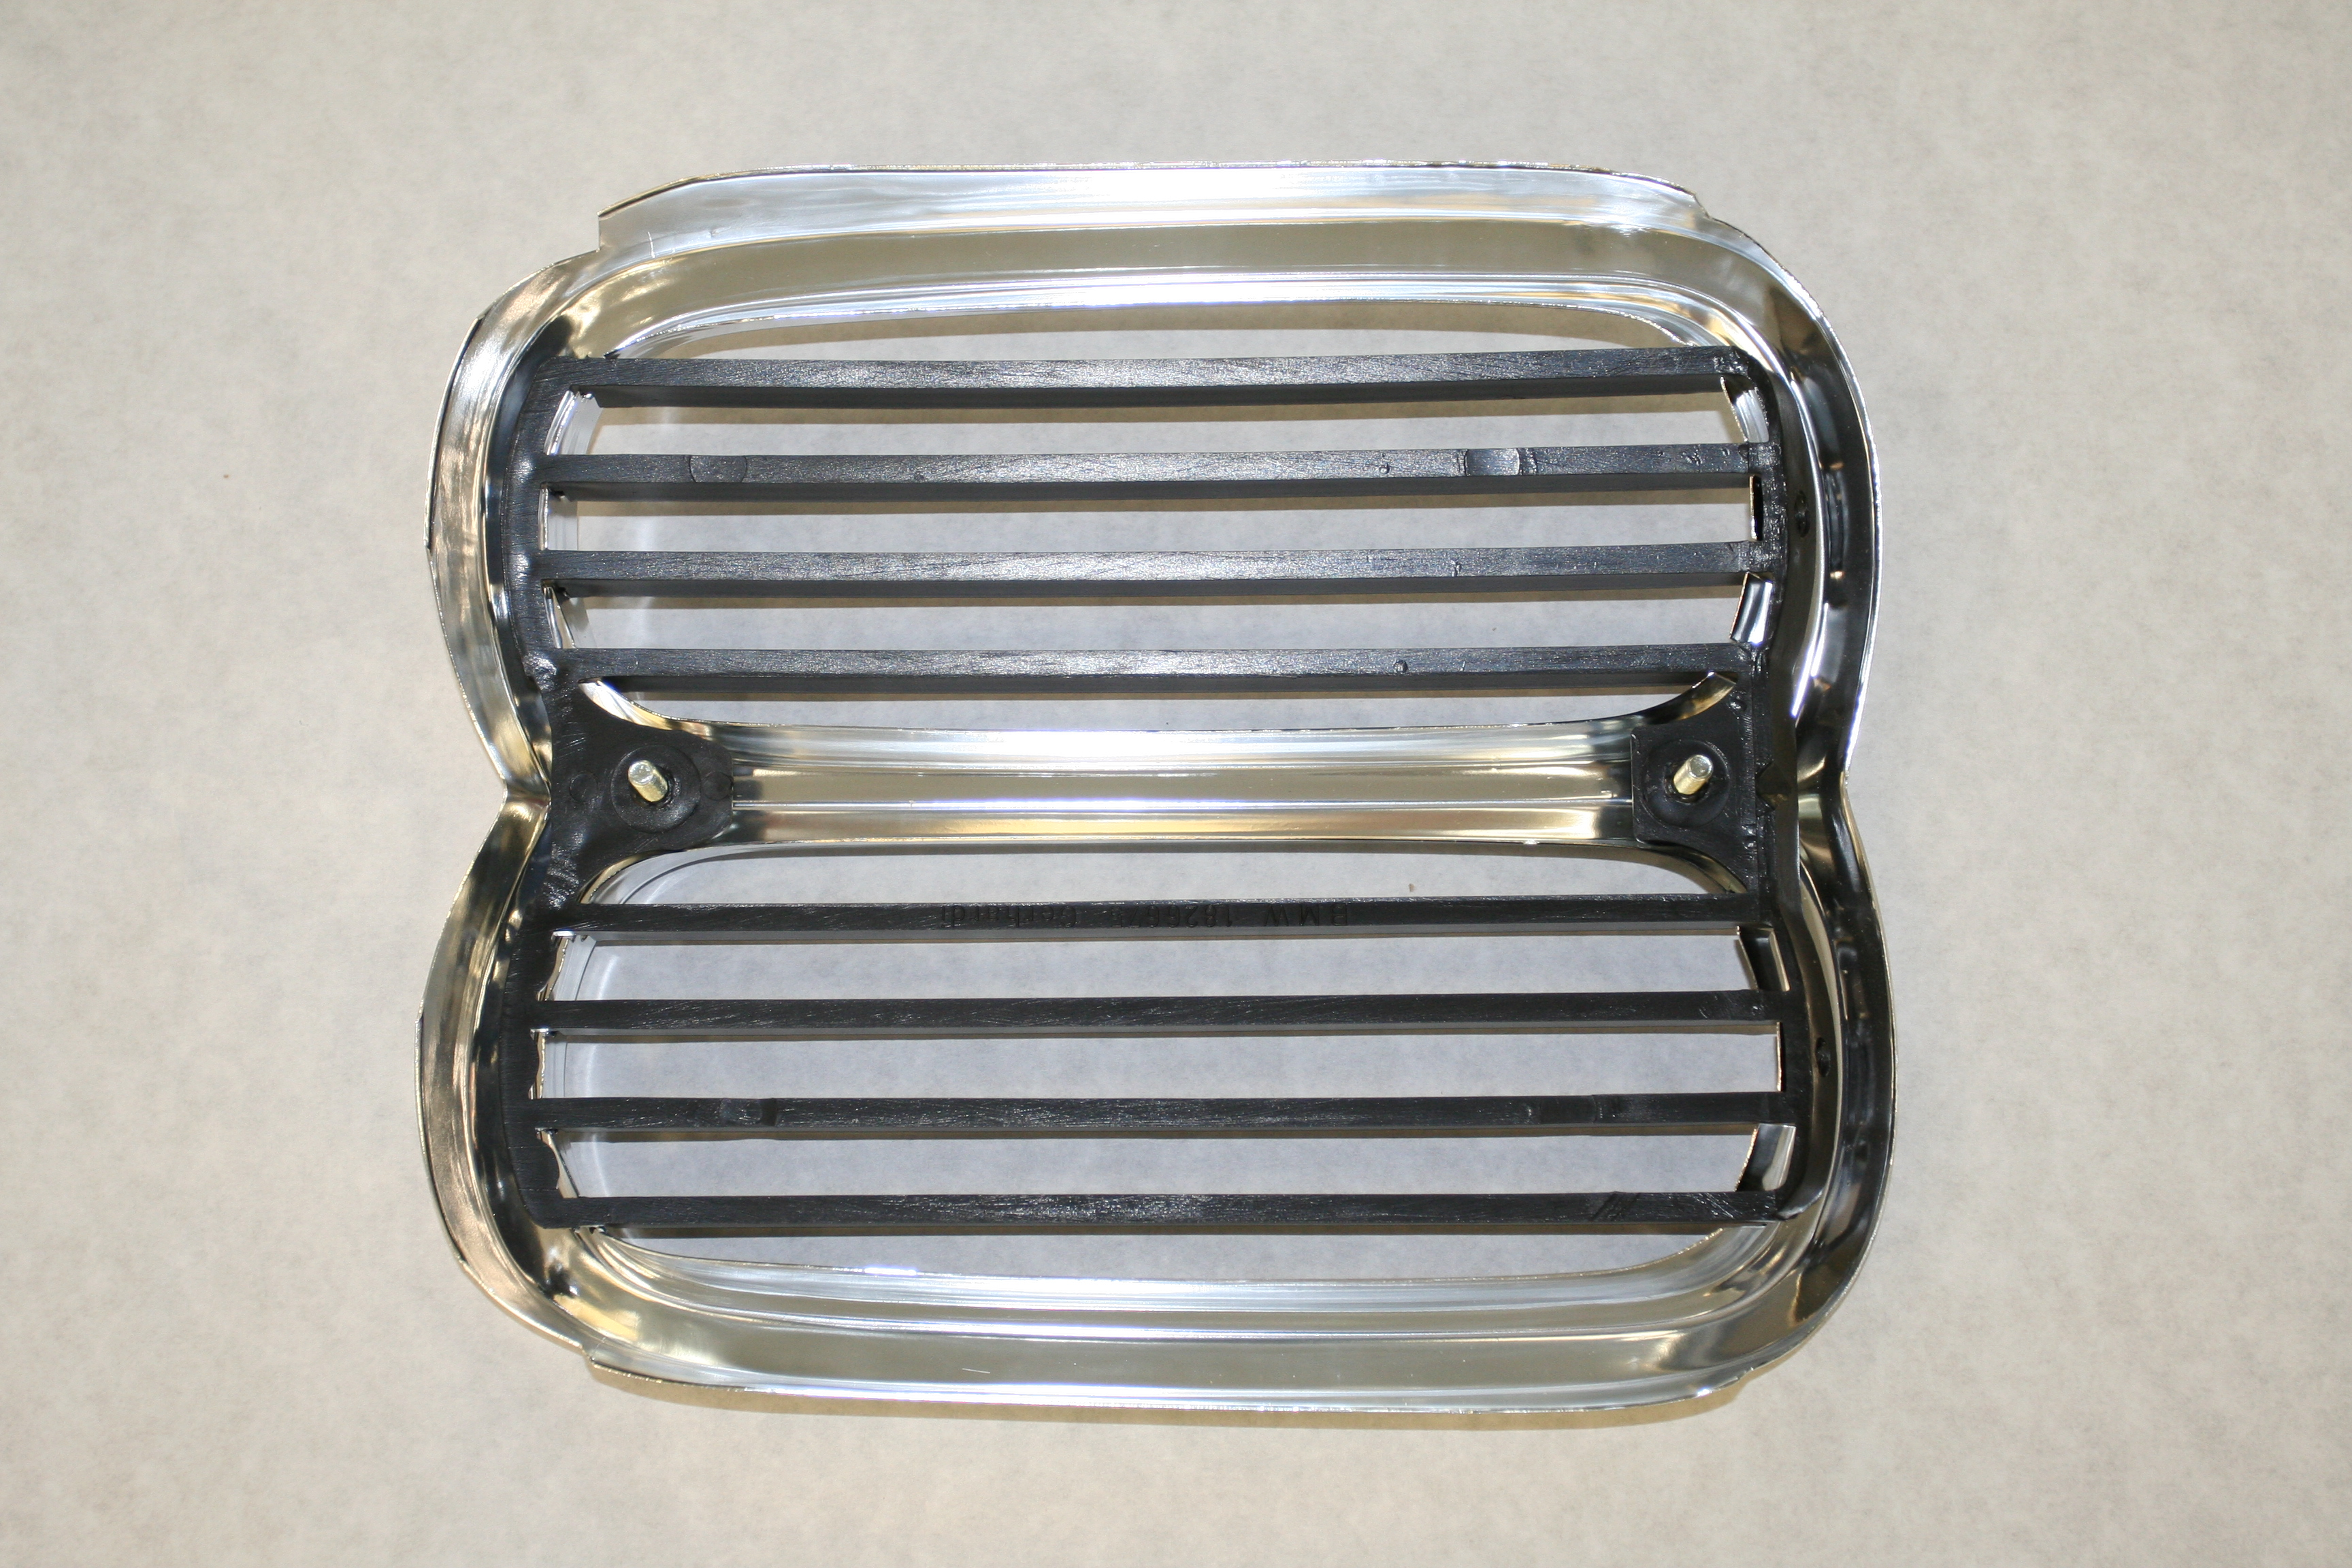 E10 74-76 Front Center Grille,New - Parts For Sale - BMW